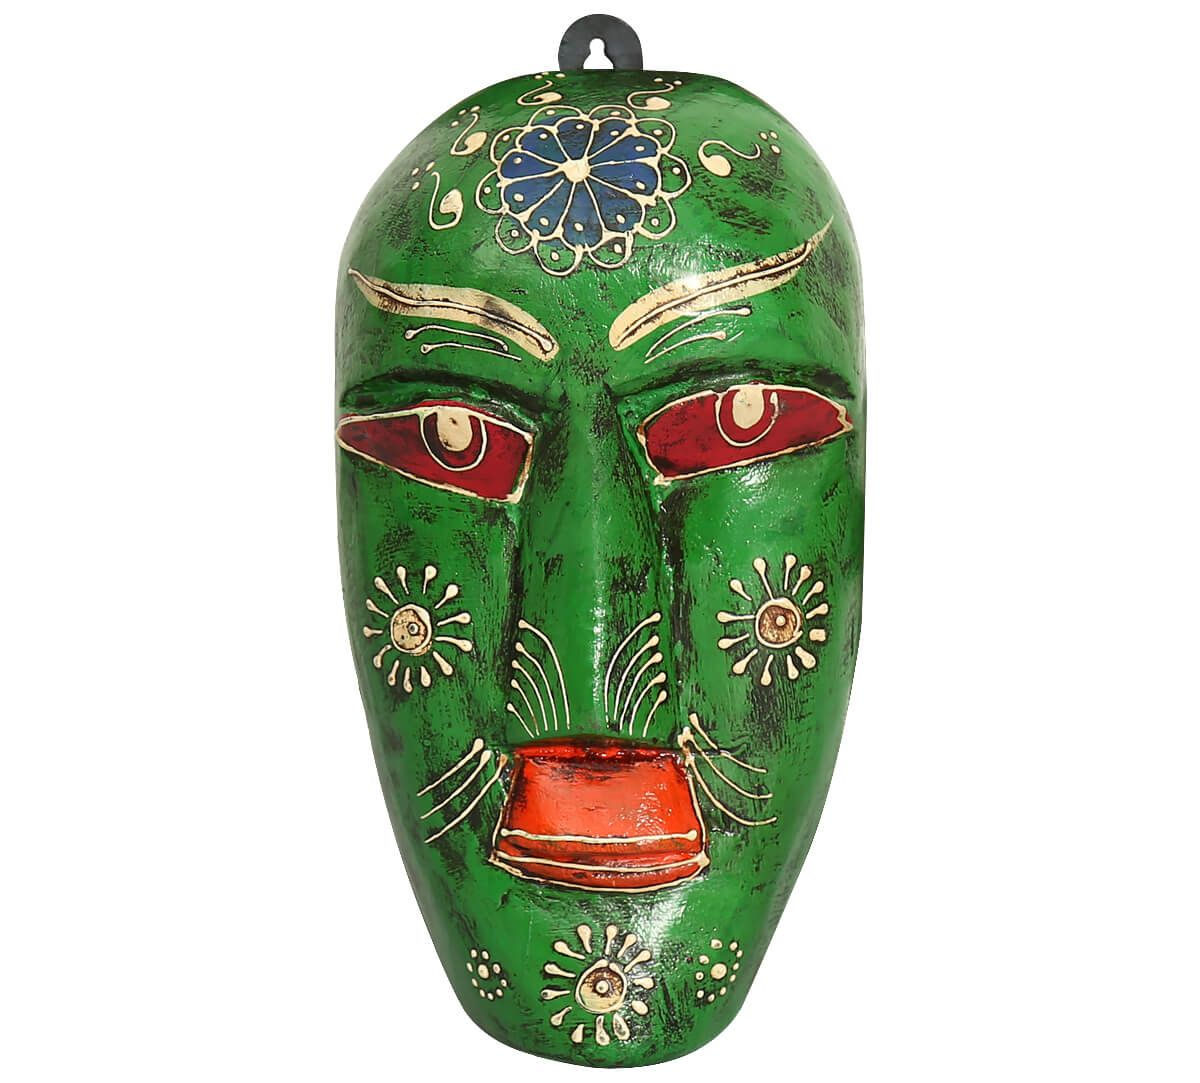 India Circus Olive Hobgoblin Decorative Wooden Mask